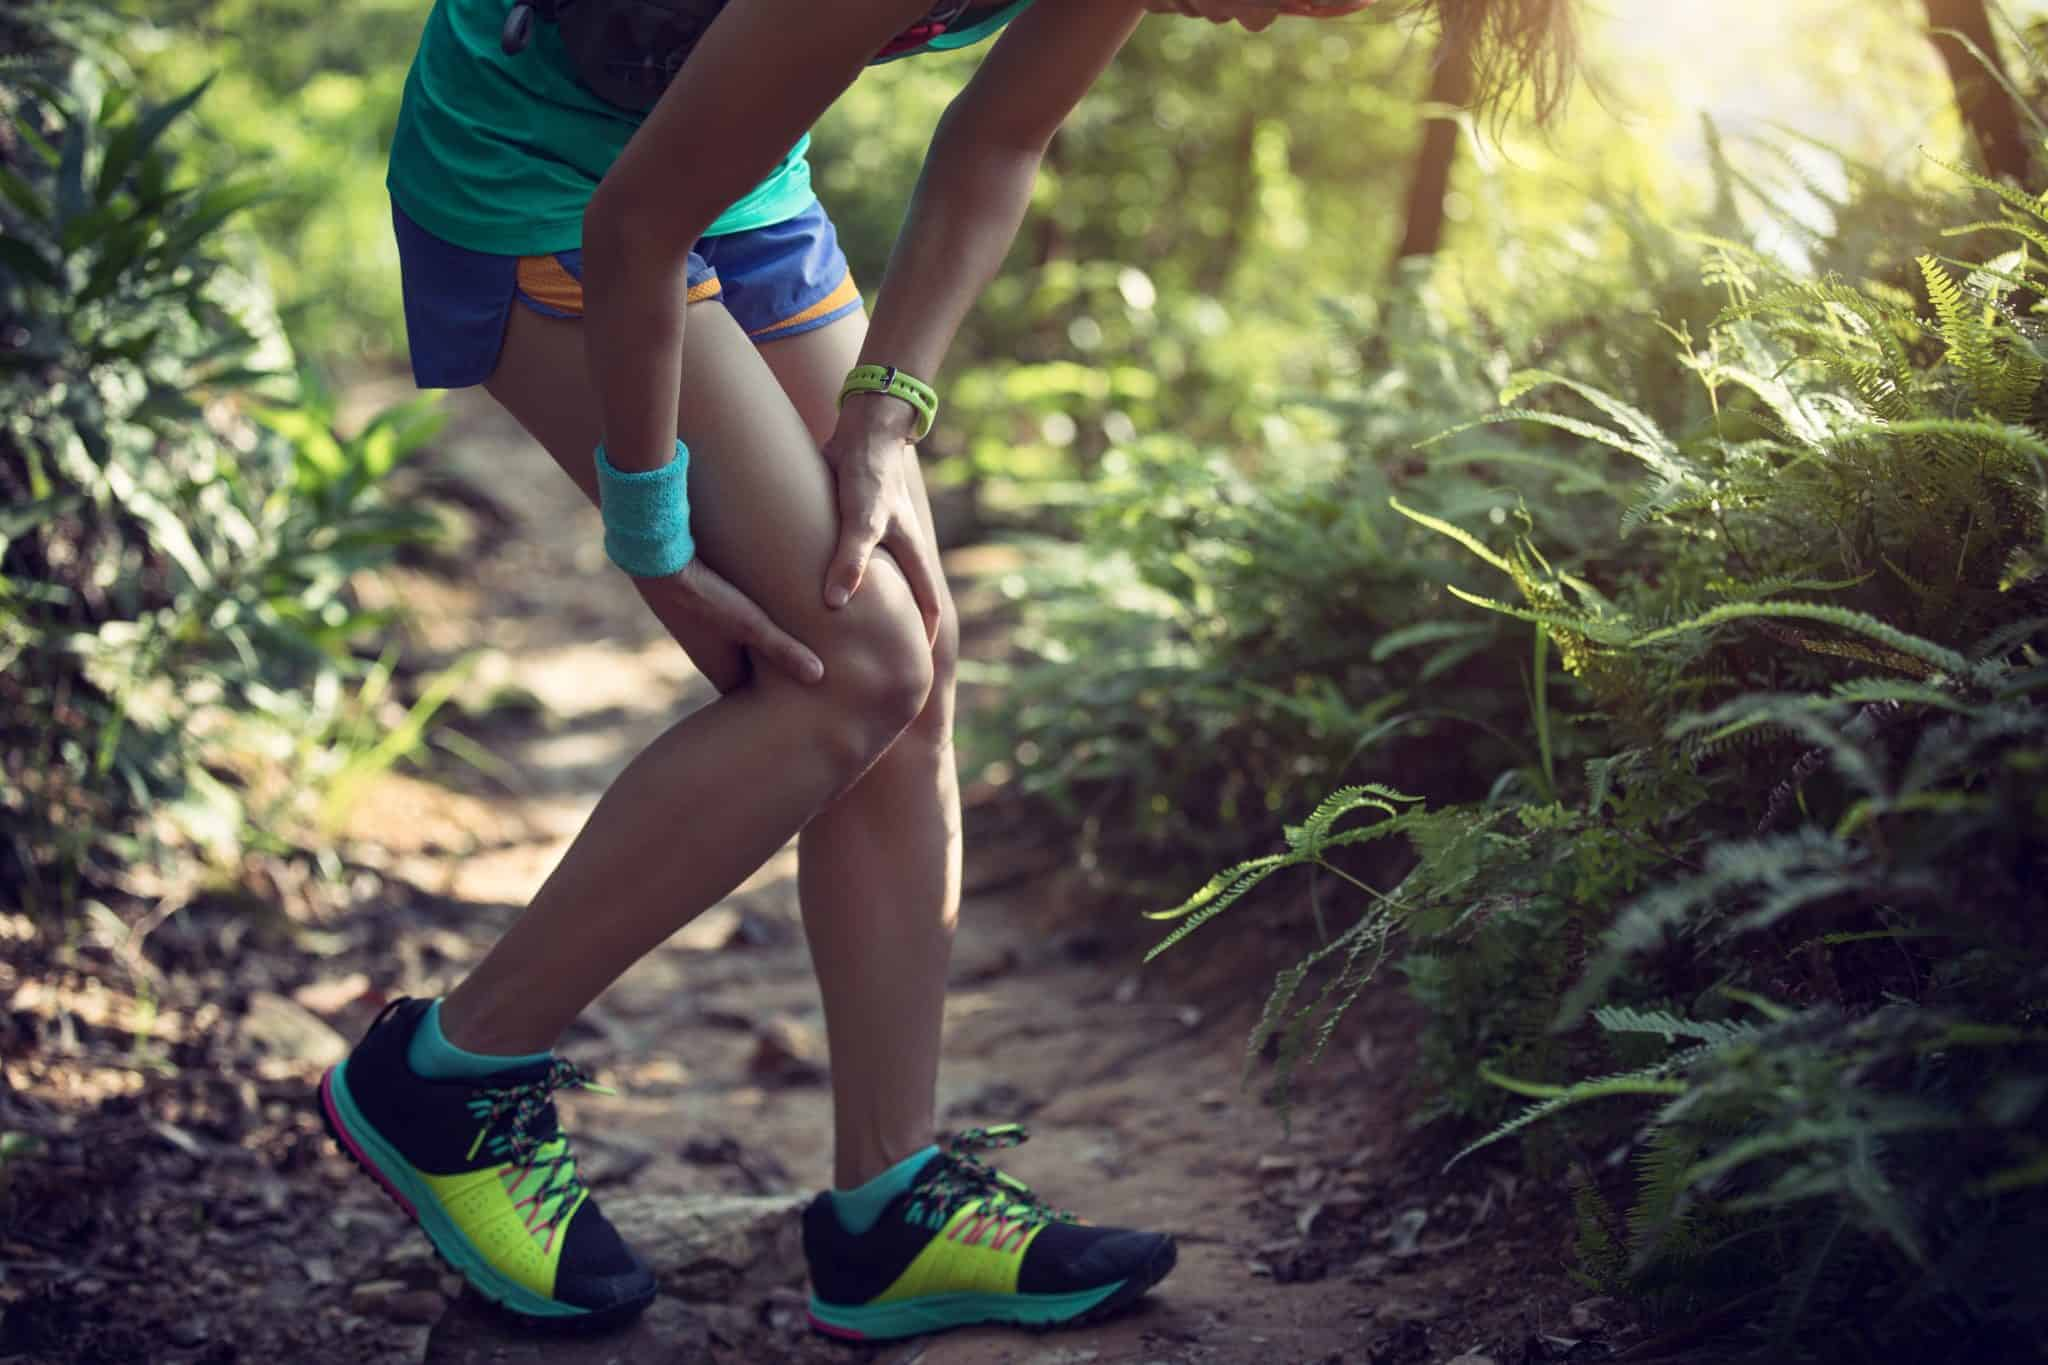 8 top running injury rehab mistakes to avoid to resume your training and reach your goals sooner. Tips to get you running post injury sooner. #runningtips, #runner #marathon #runnerinjury #runningrehab #runnerrehab #rehabmistakes